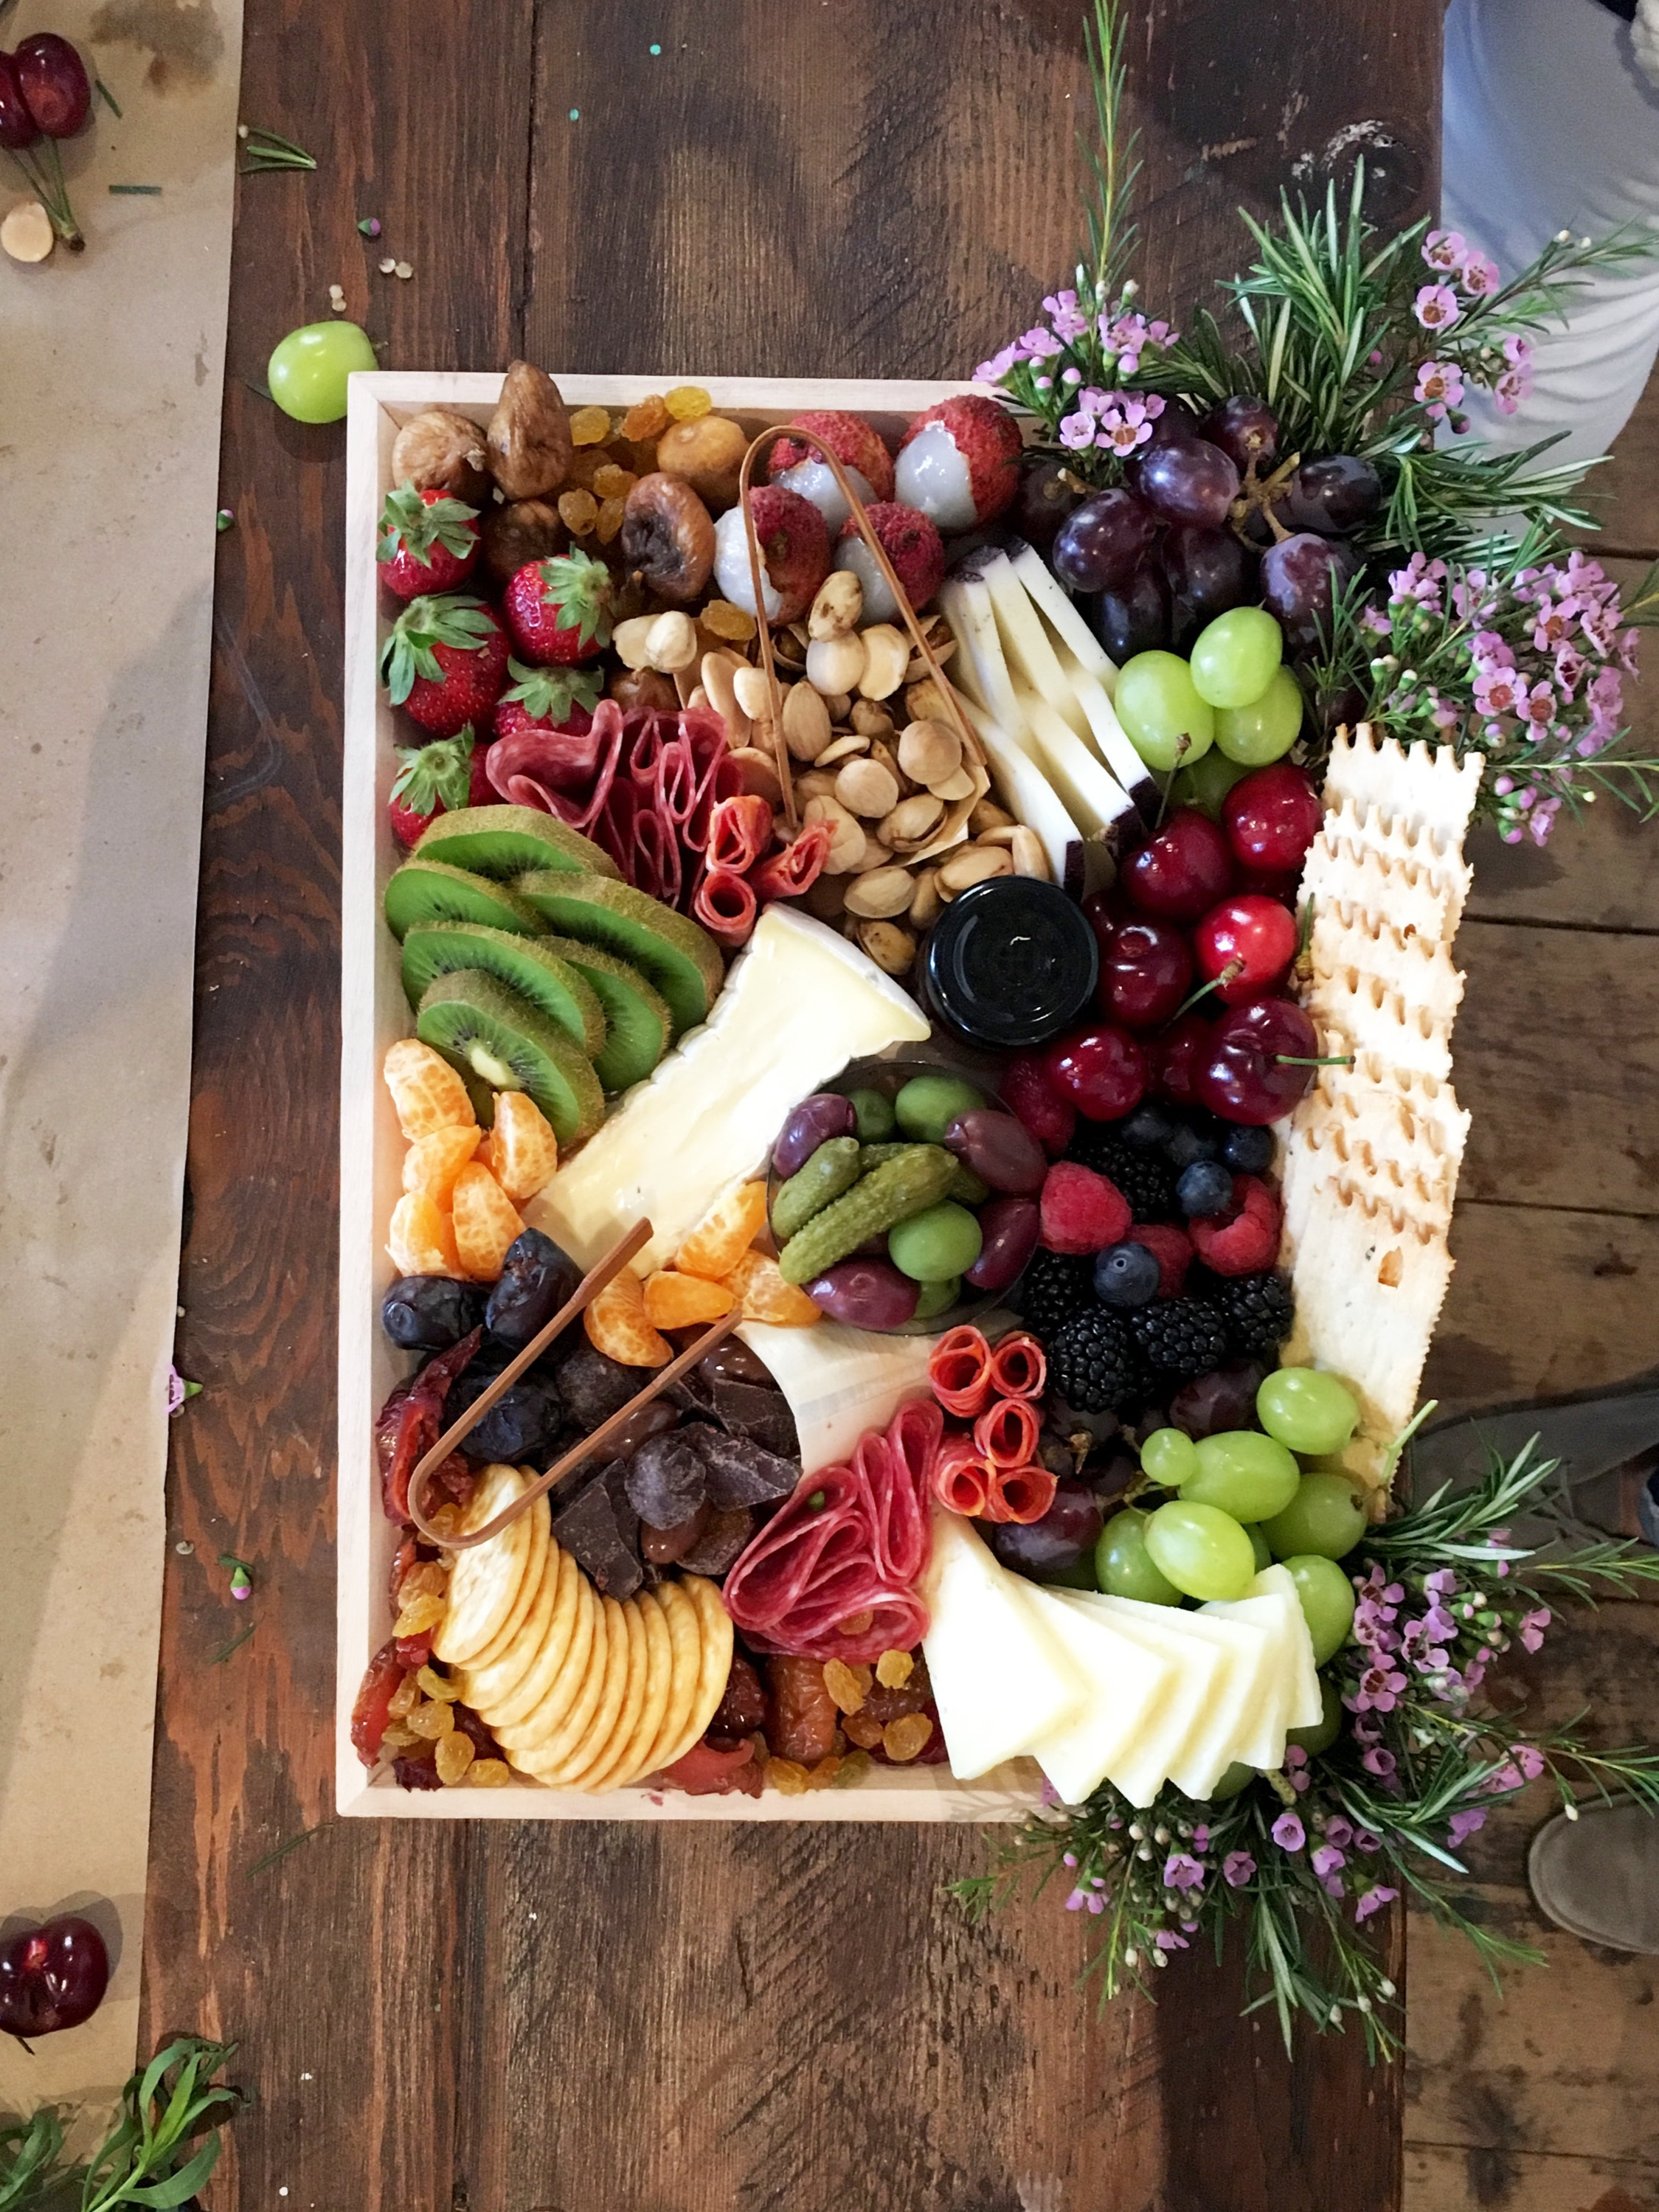 Cheese+Platter+Workshop+with+Noel+Moton+at+SOURCED.jpg